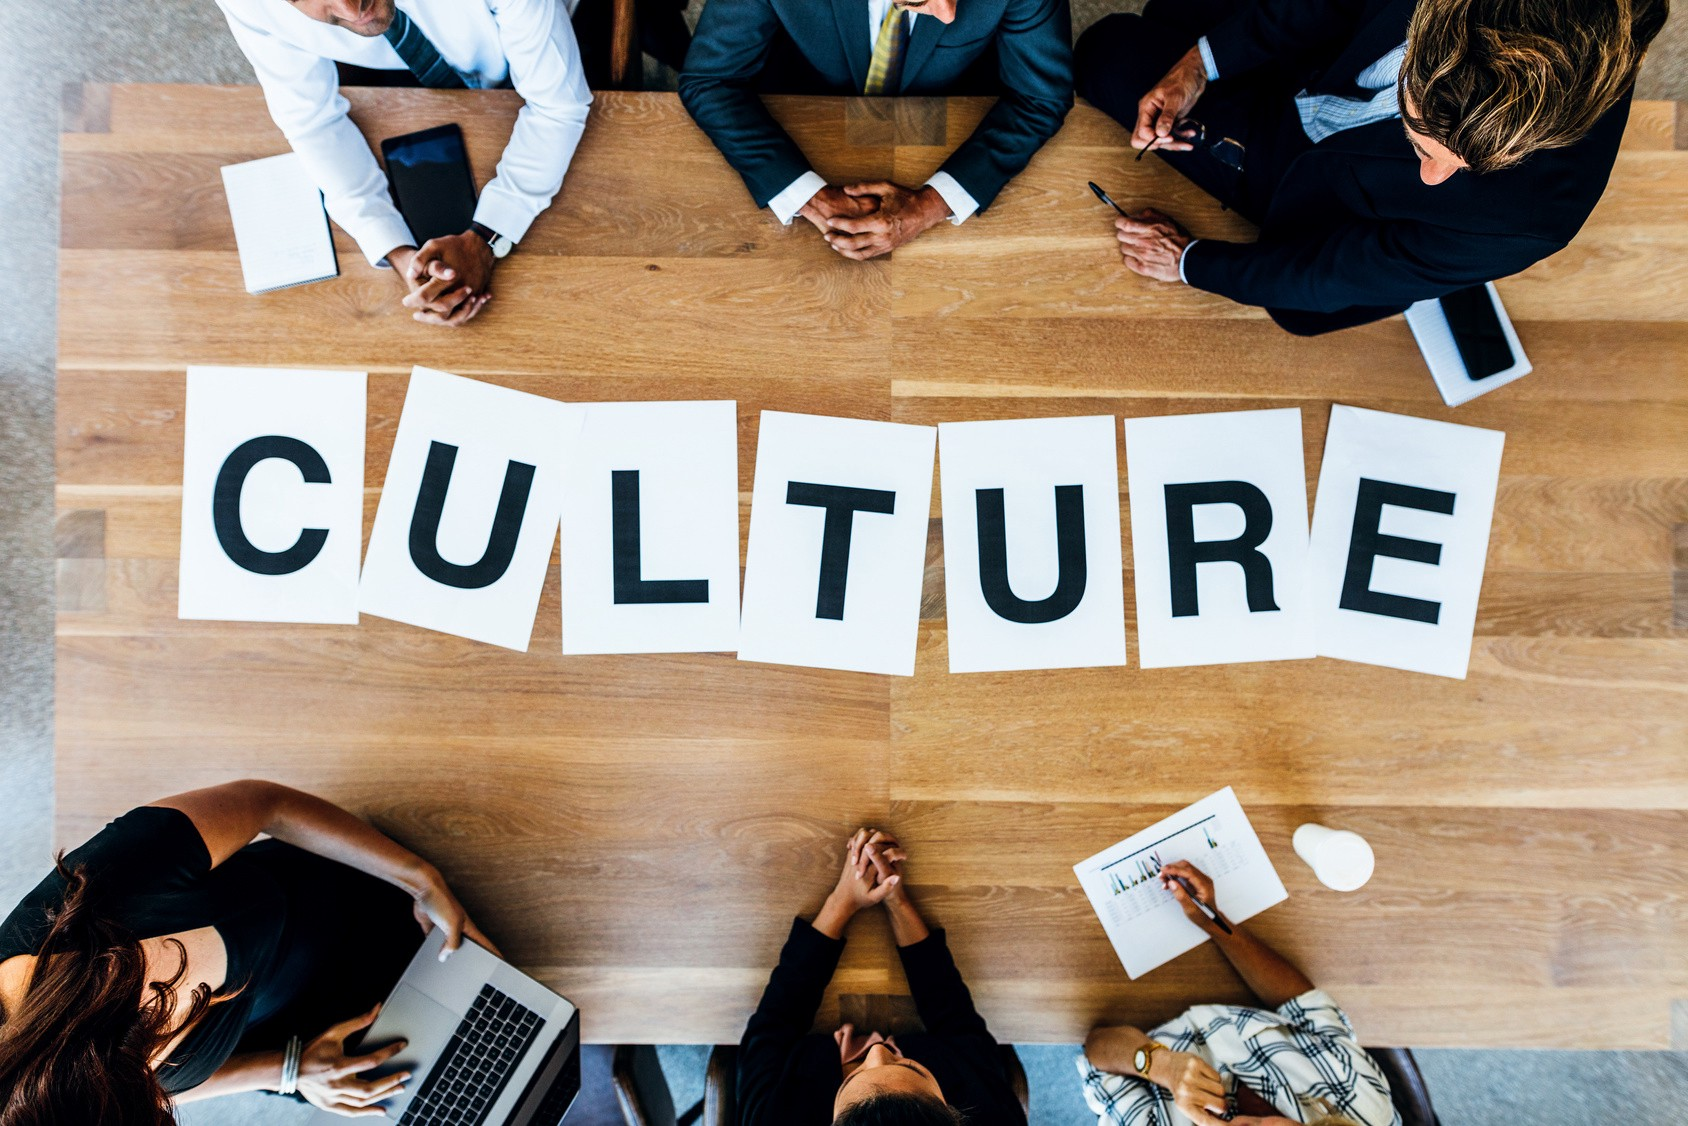 How to avoid the cultural misunderstandings that can impact